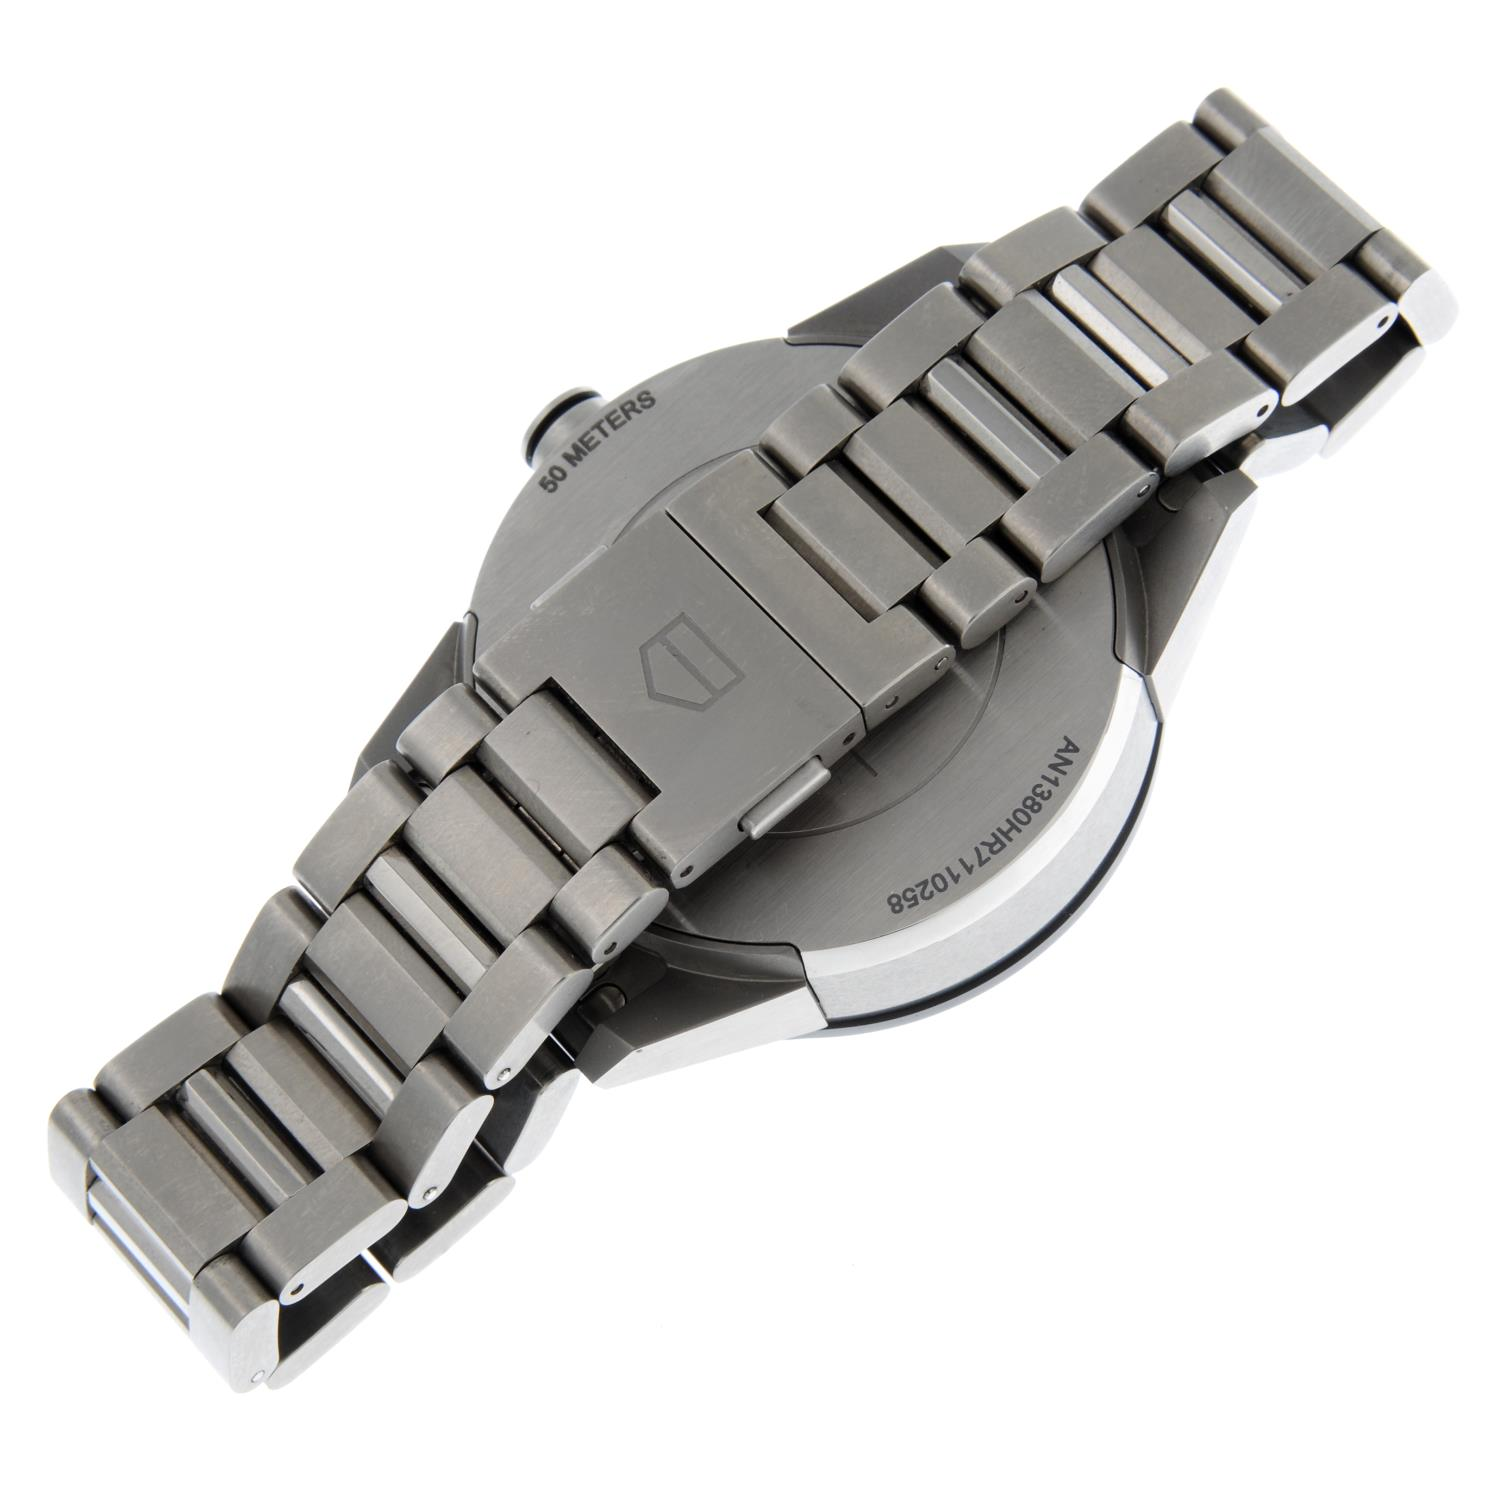 TAG HEUER - a Connected bracelet watch. - Image 2 of 6